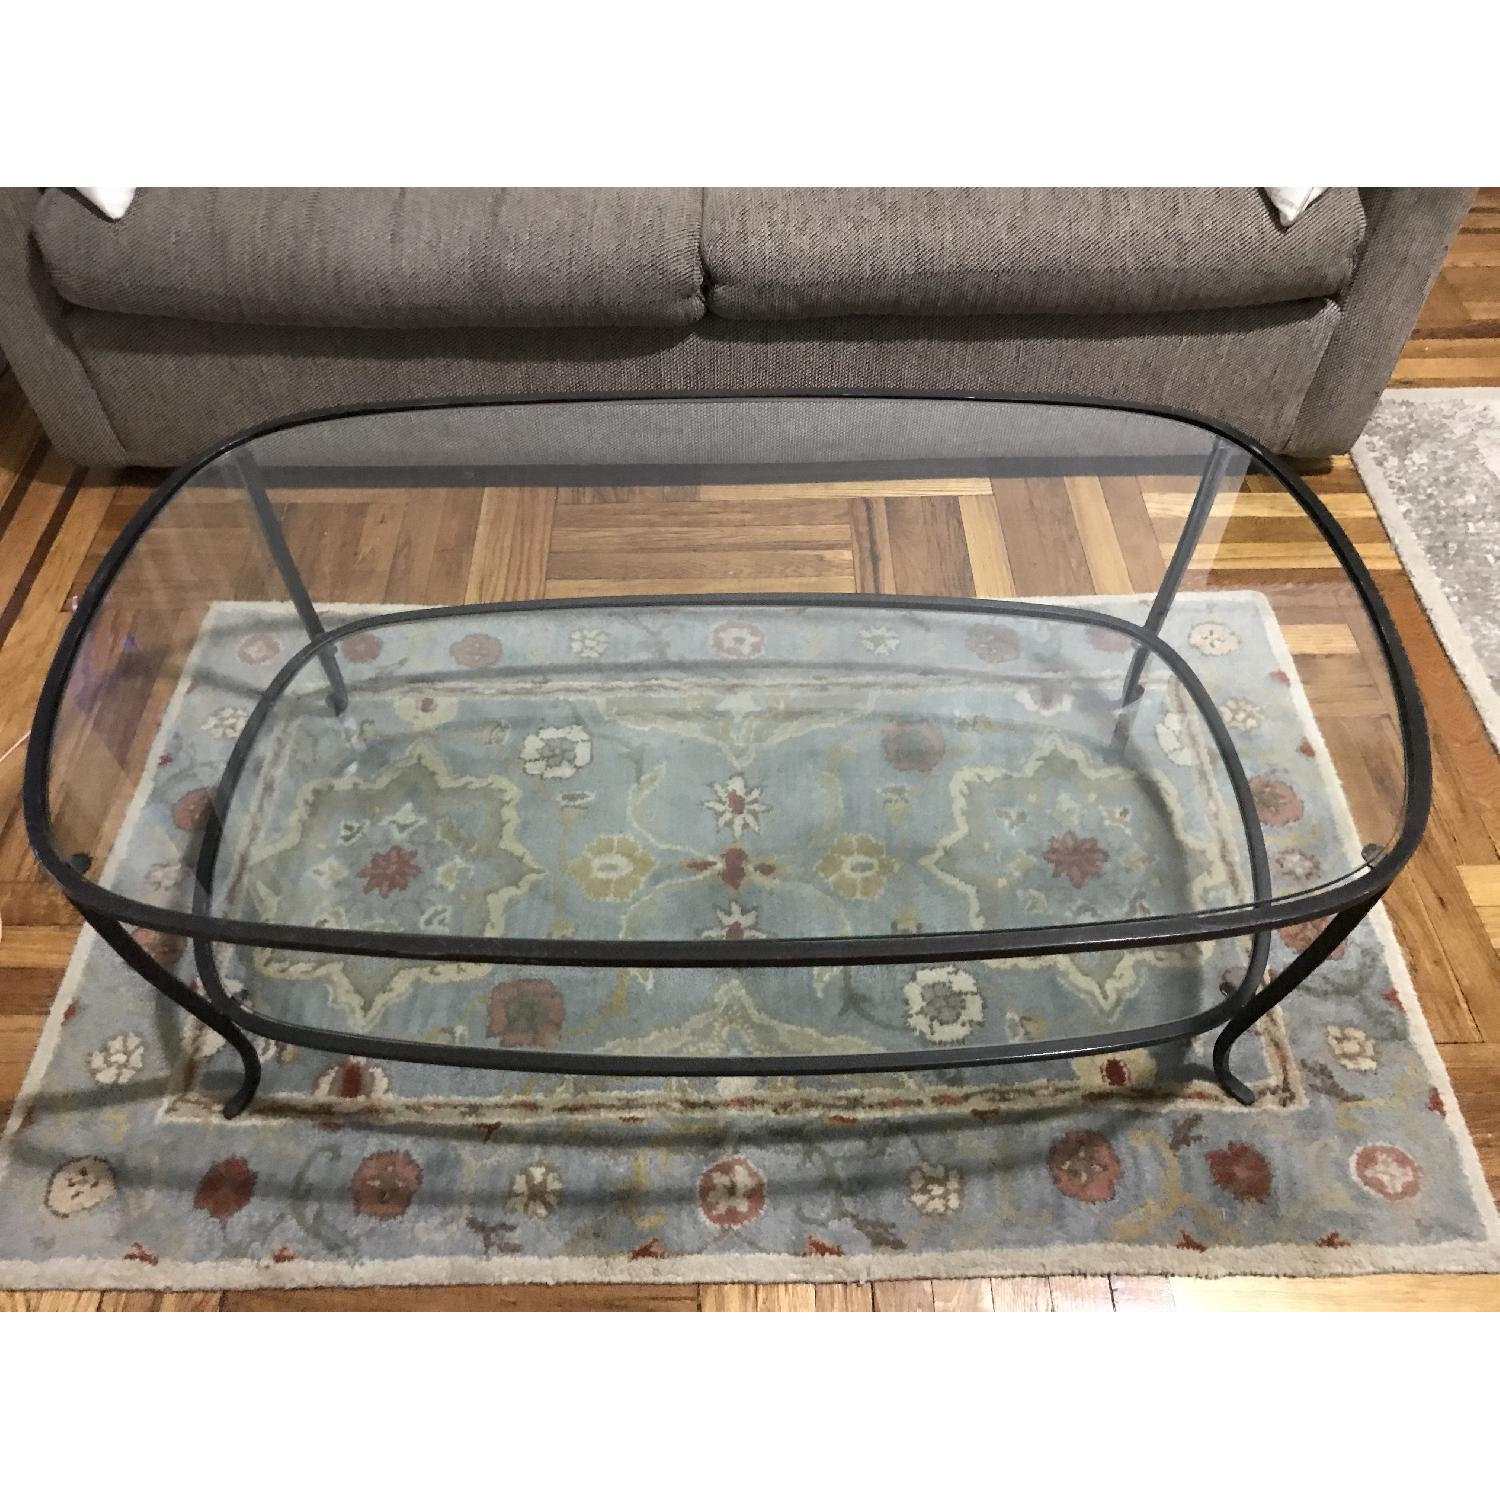 Pottery Barn Glass w/ Cast Iron Frame Coffee Table